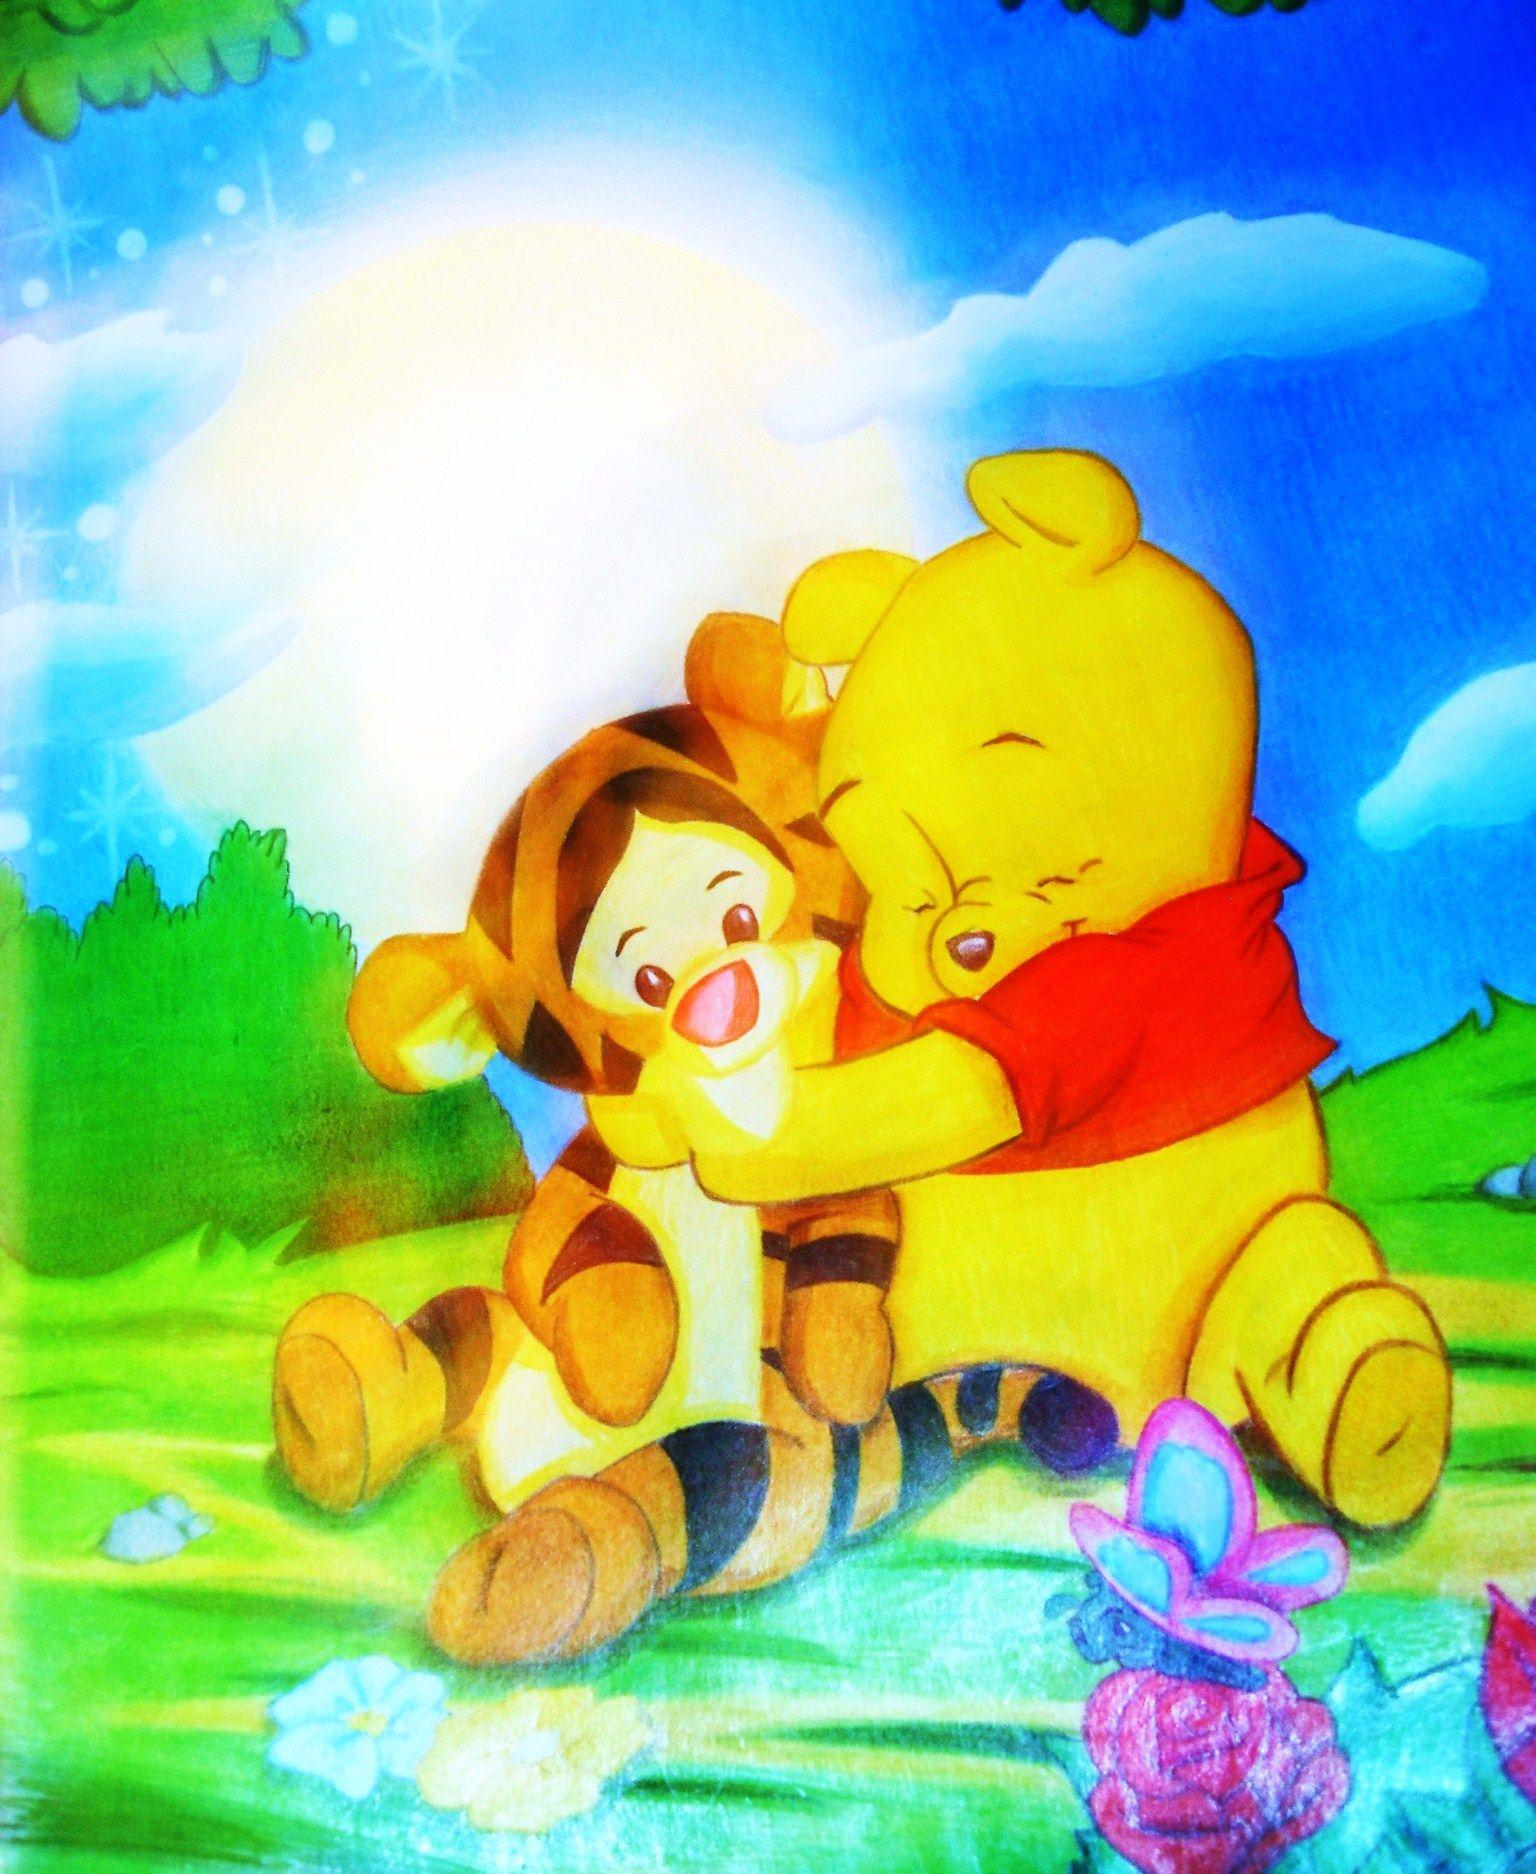 Wallpapers Of Winnie The Pooh - Wallpaper Cave